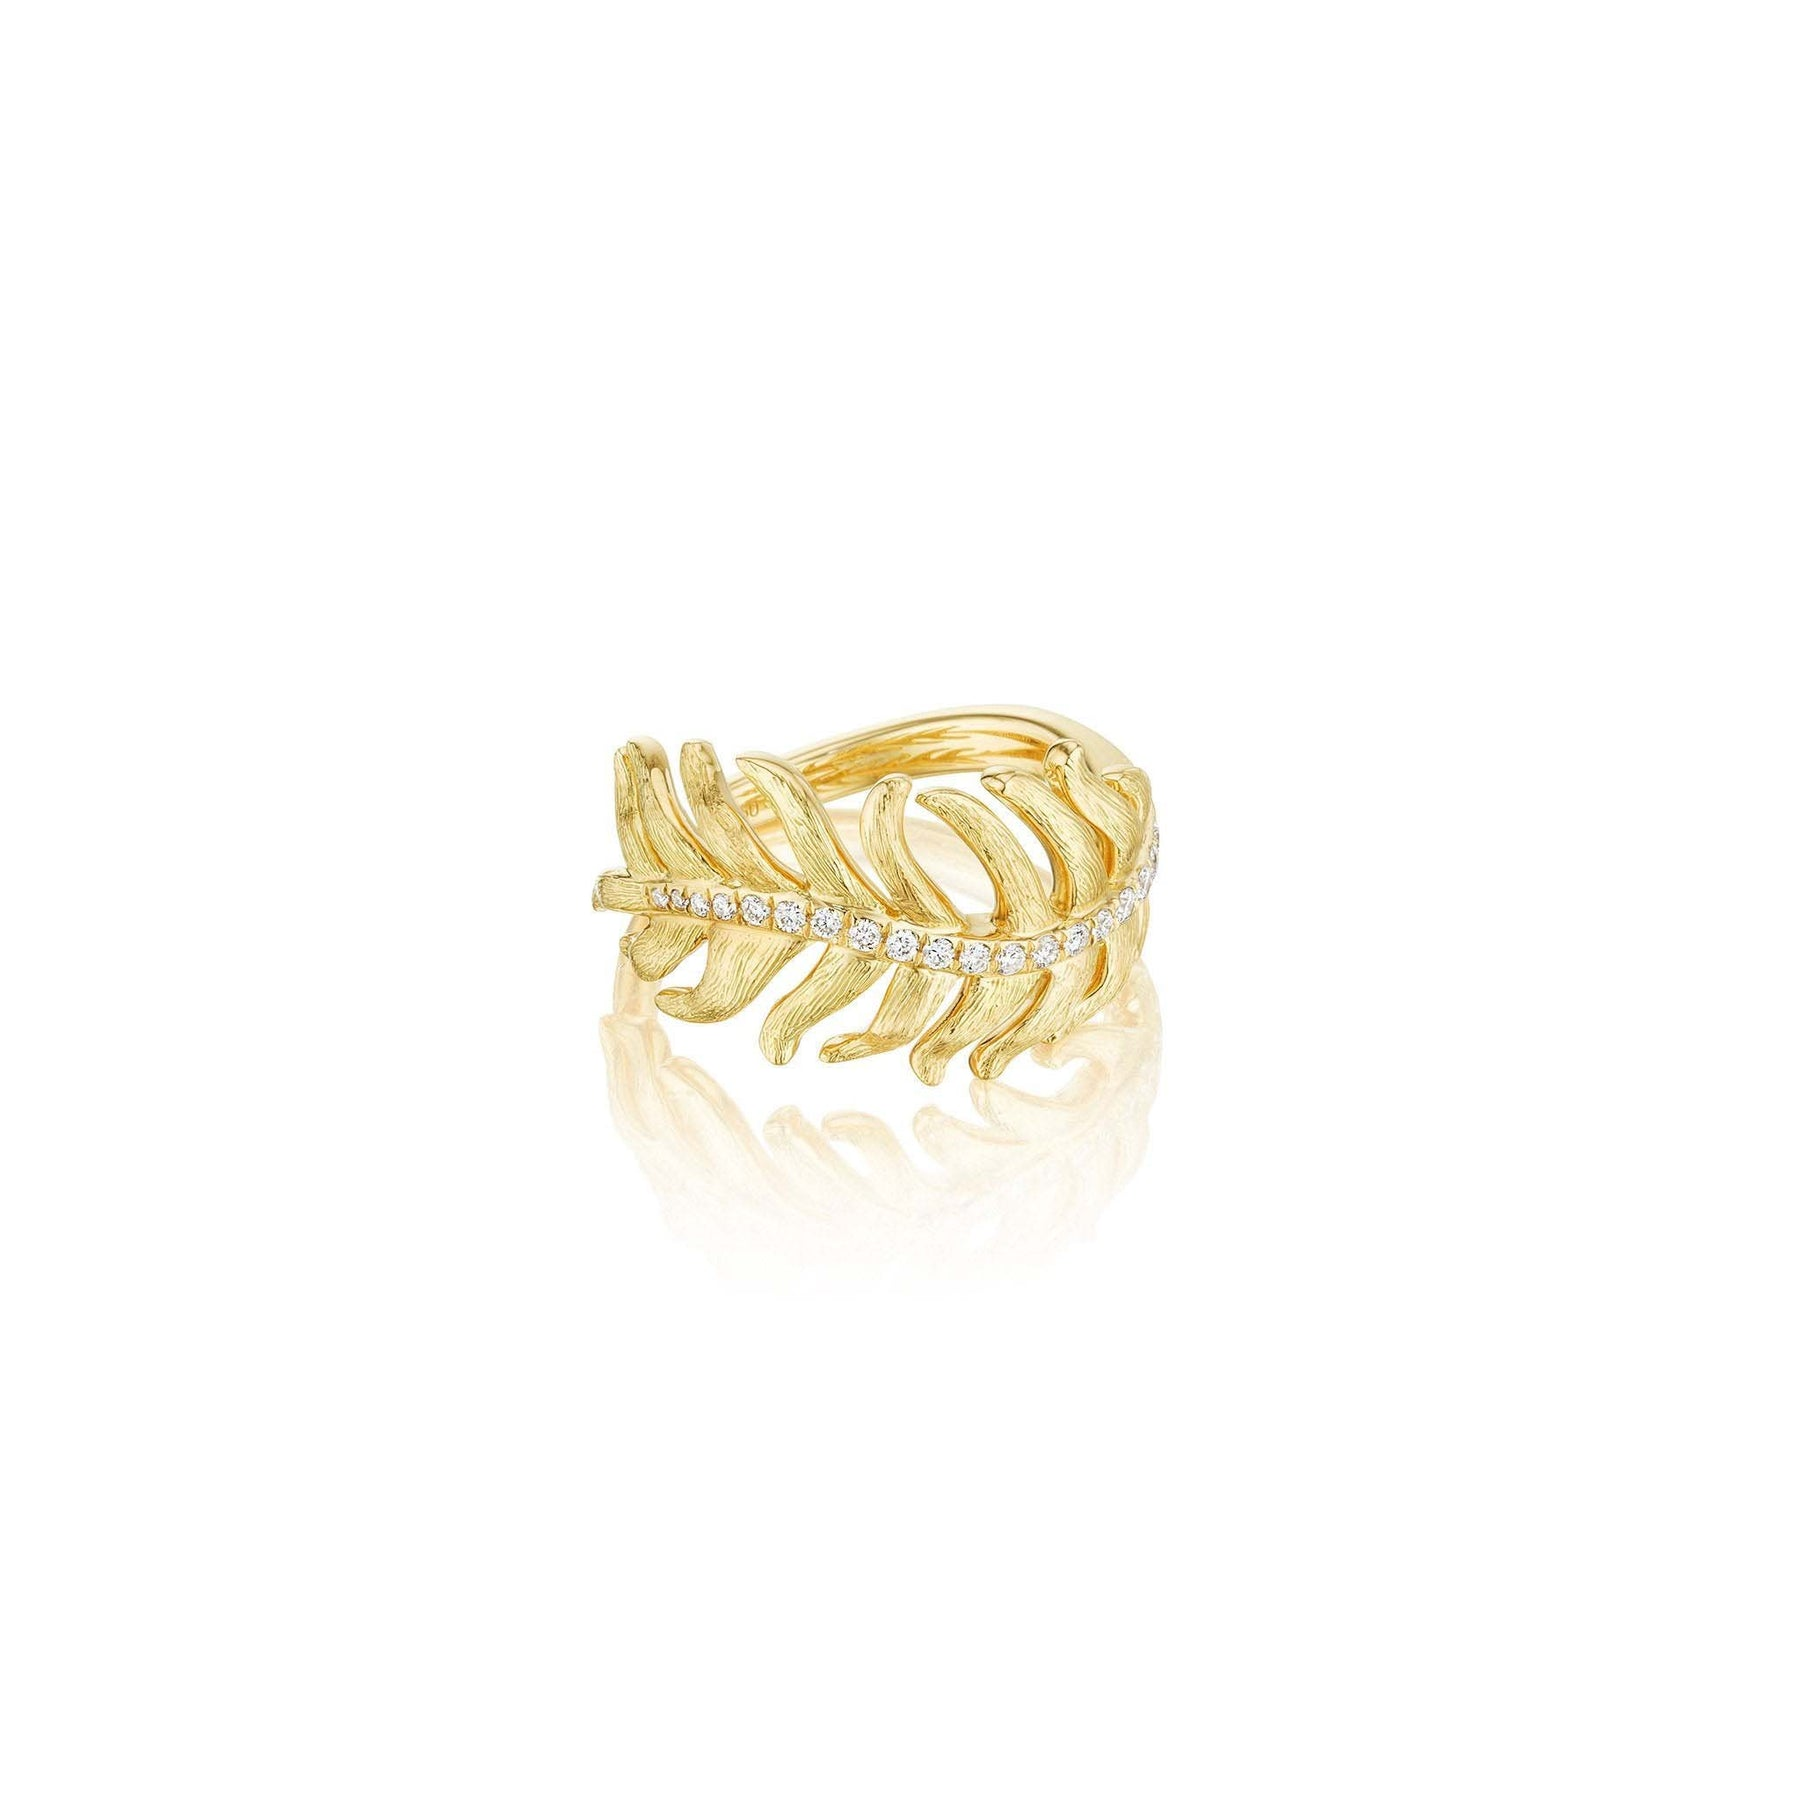 Mimi-So-Phoenix-Feather-Ring-with-Diamonds_18k Yellow Gold